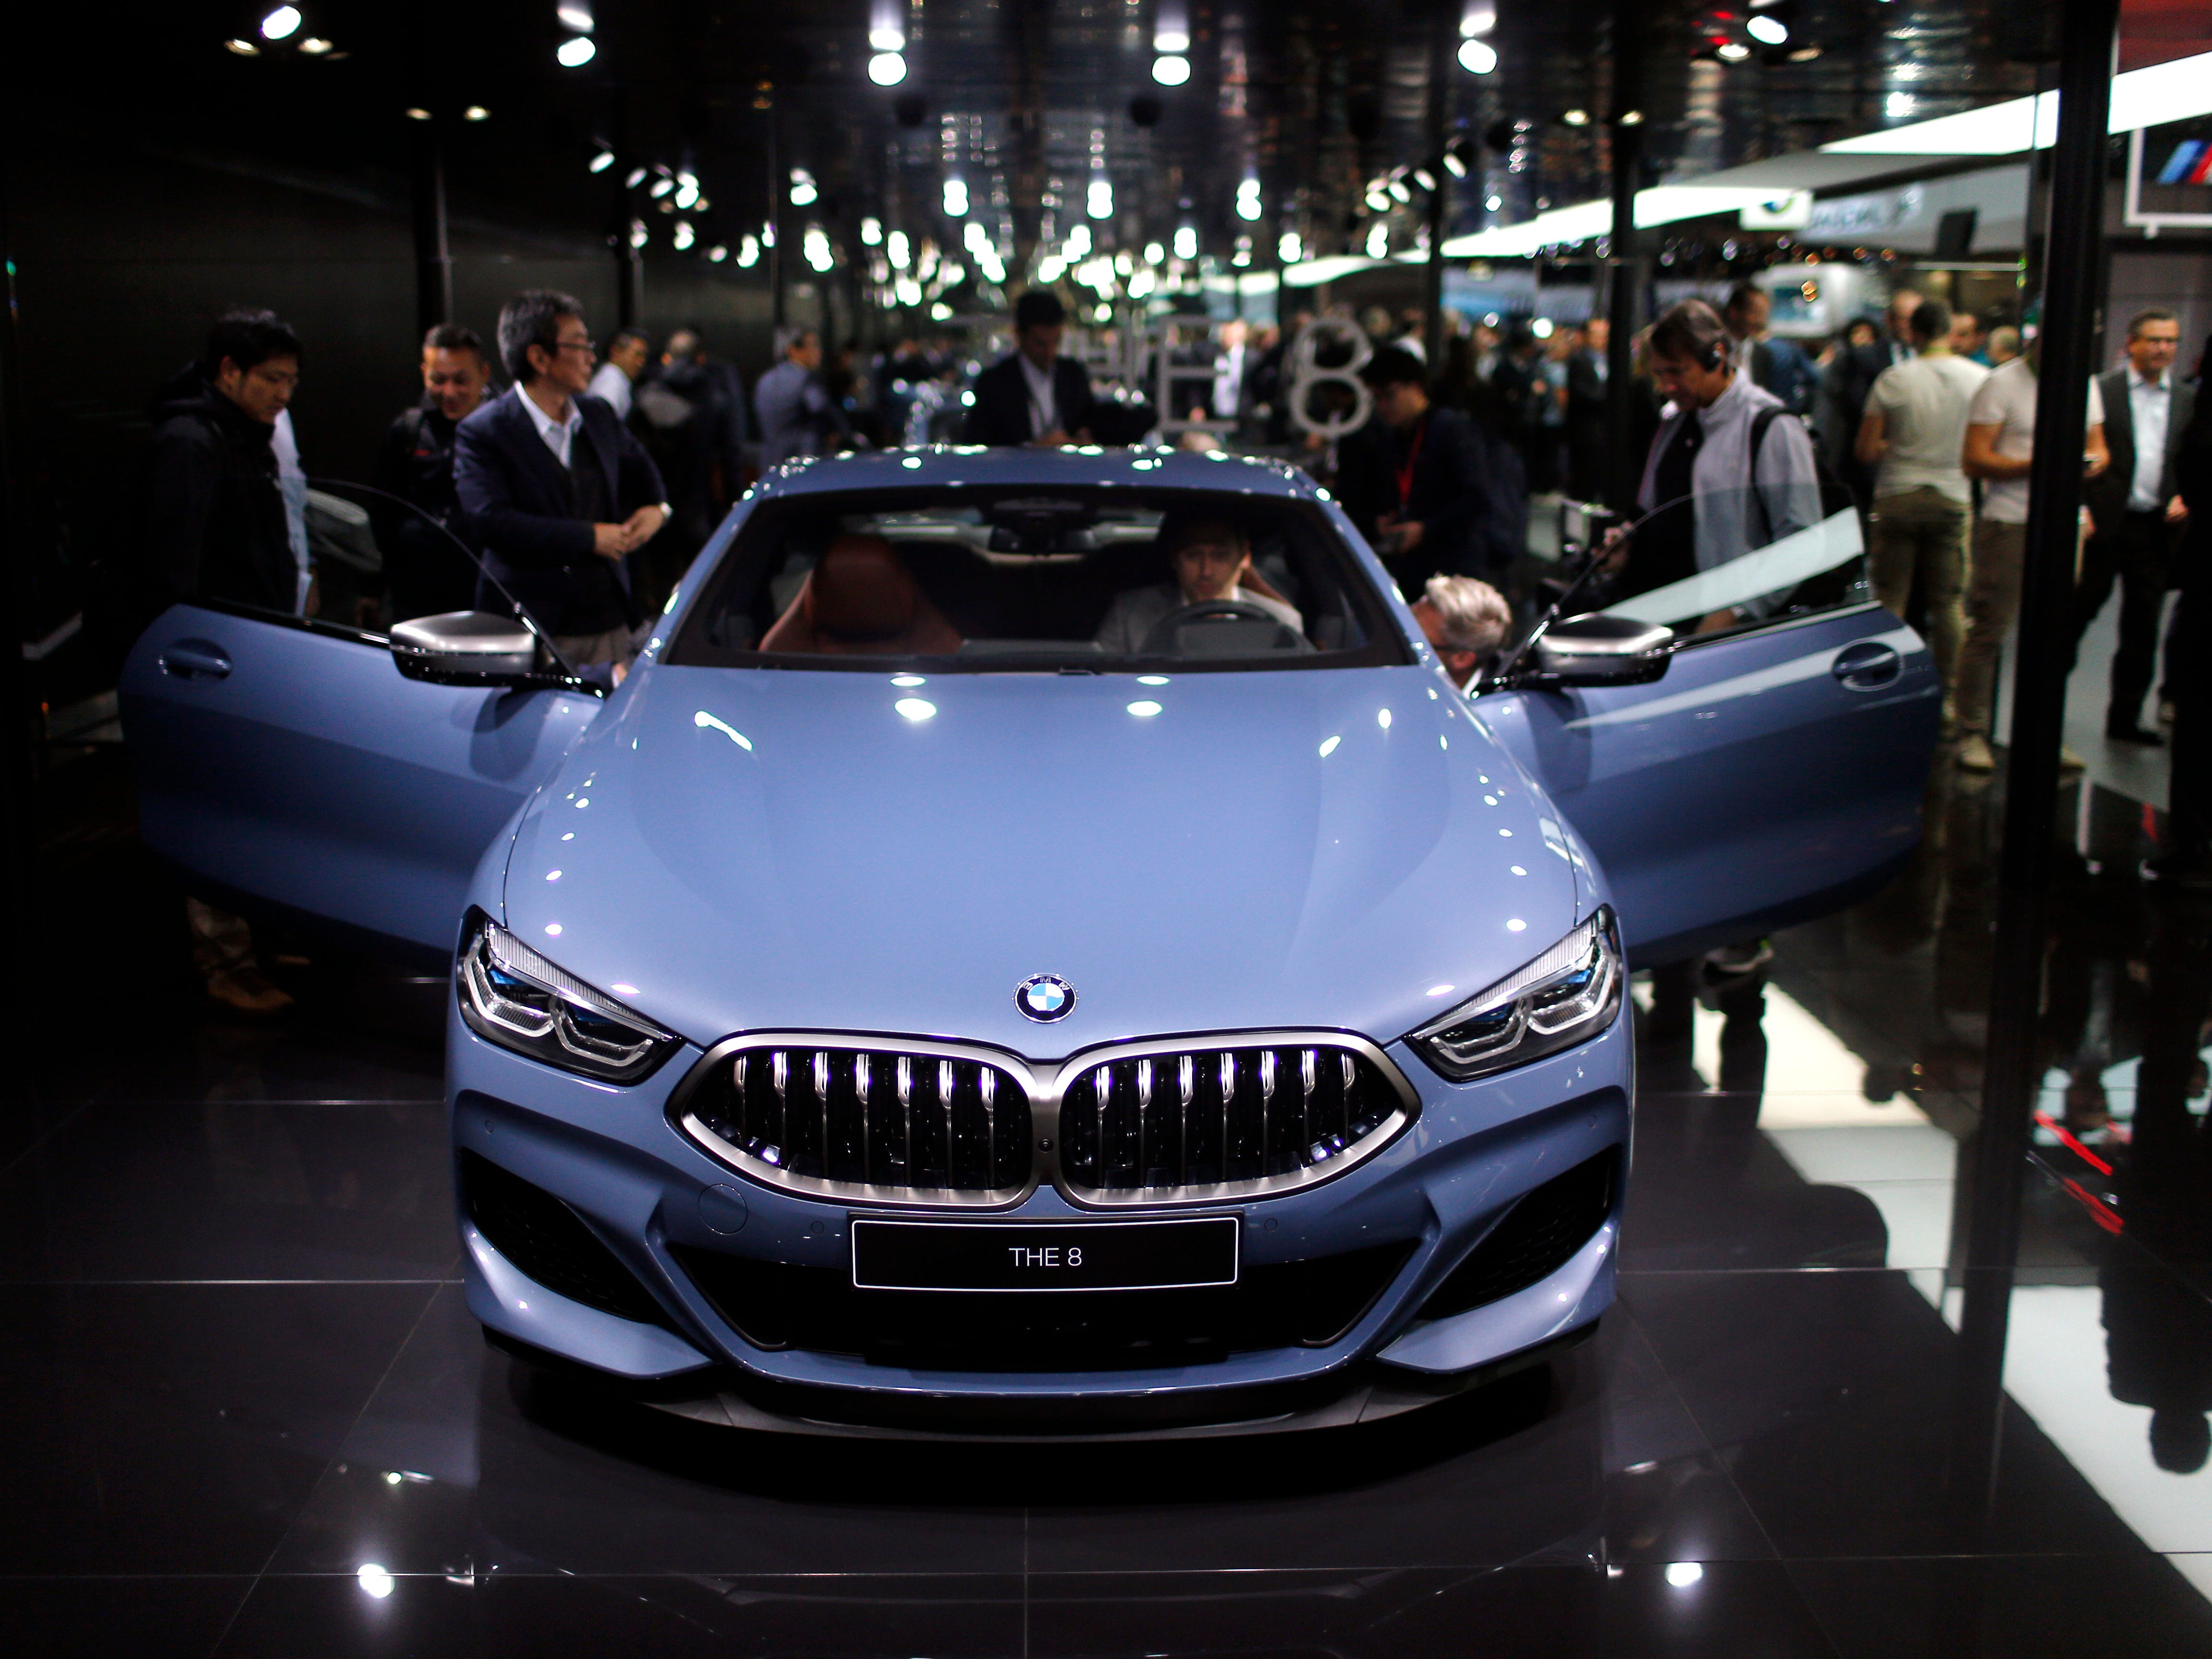 BMW ranked 13th, with a valuation of $41 billion, down 1 percent.